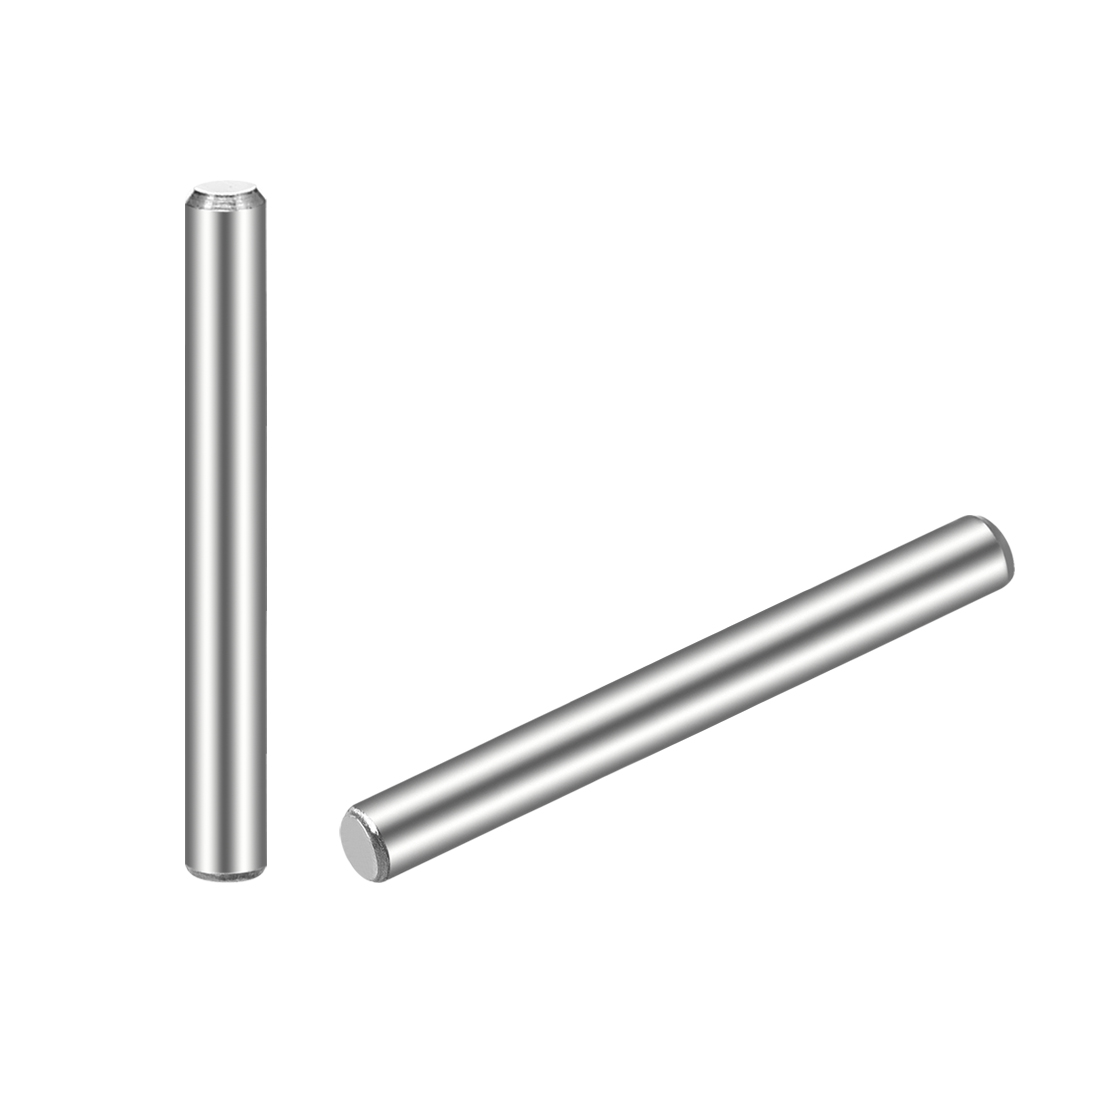 uxcell 3mm x 60mm Carbon Steel R Shaped Spring Cotter Clip Pin Fastener Hardware Silver Tone 20Pcs